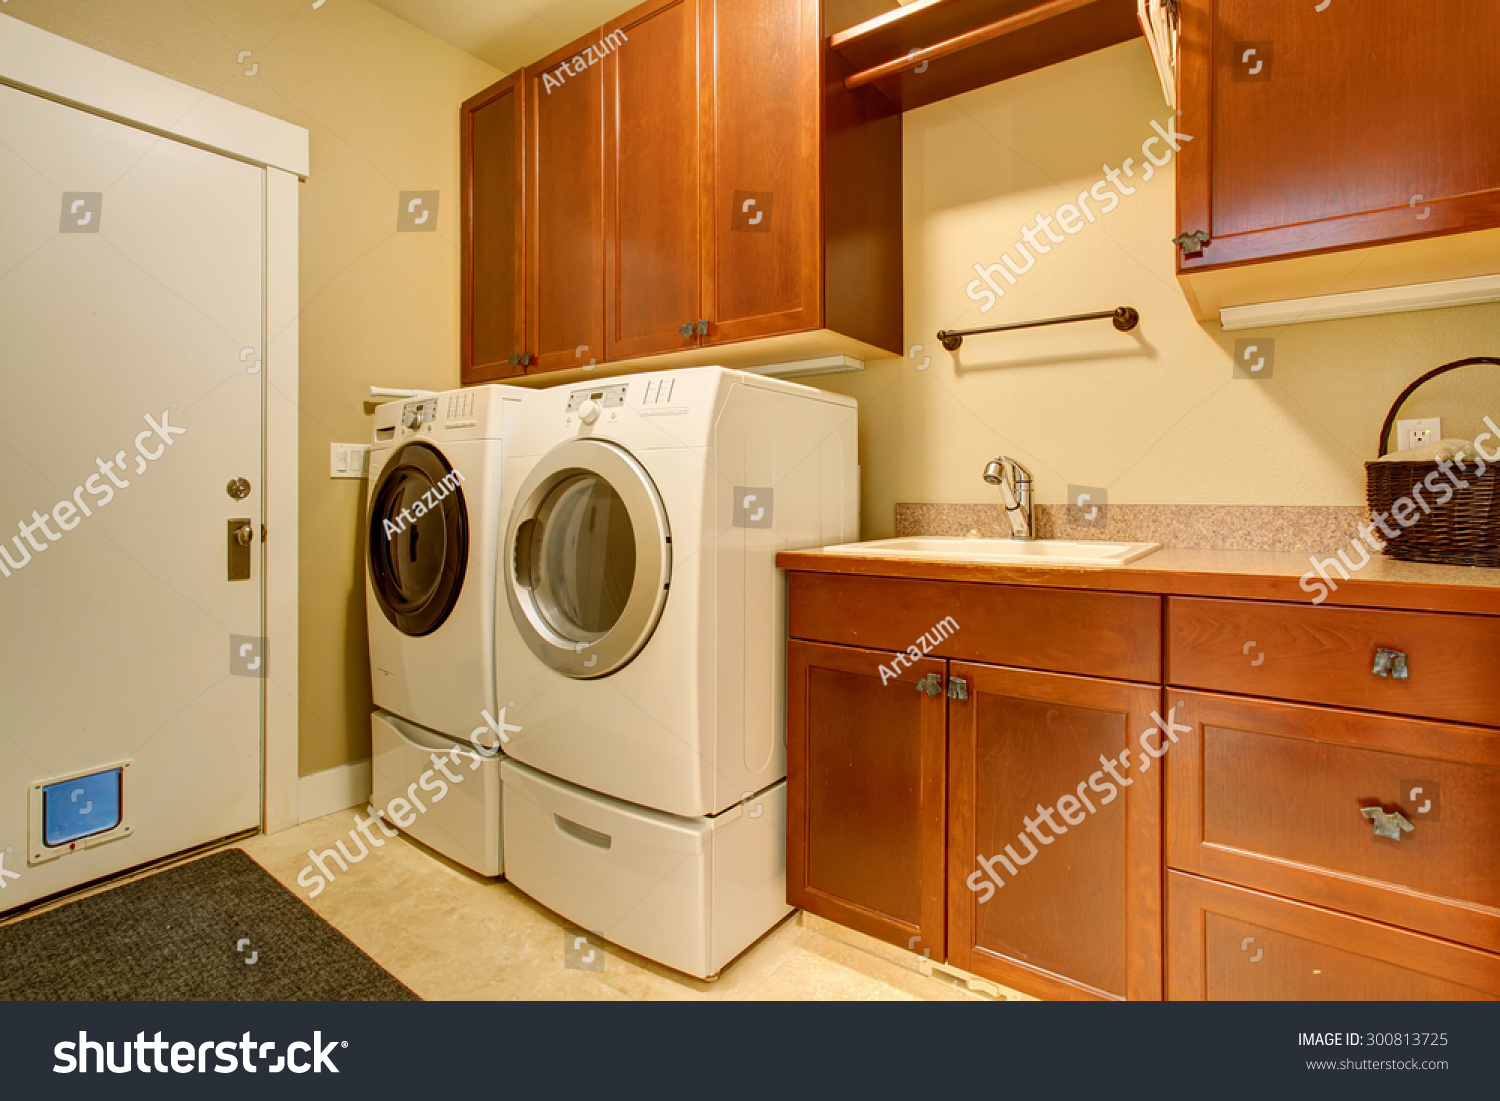 modern laundry room flooring | Modern Laundry Room With Tile Floor, Also Washer And Dryer ...